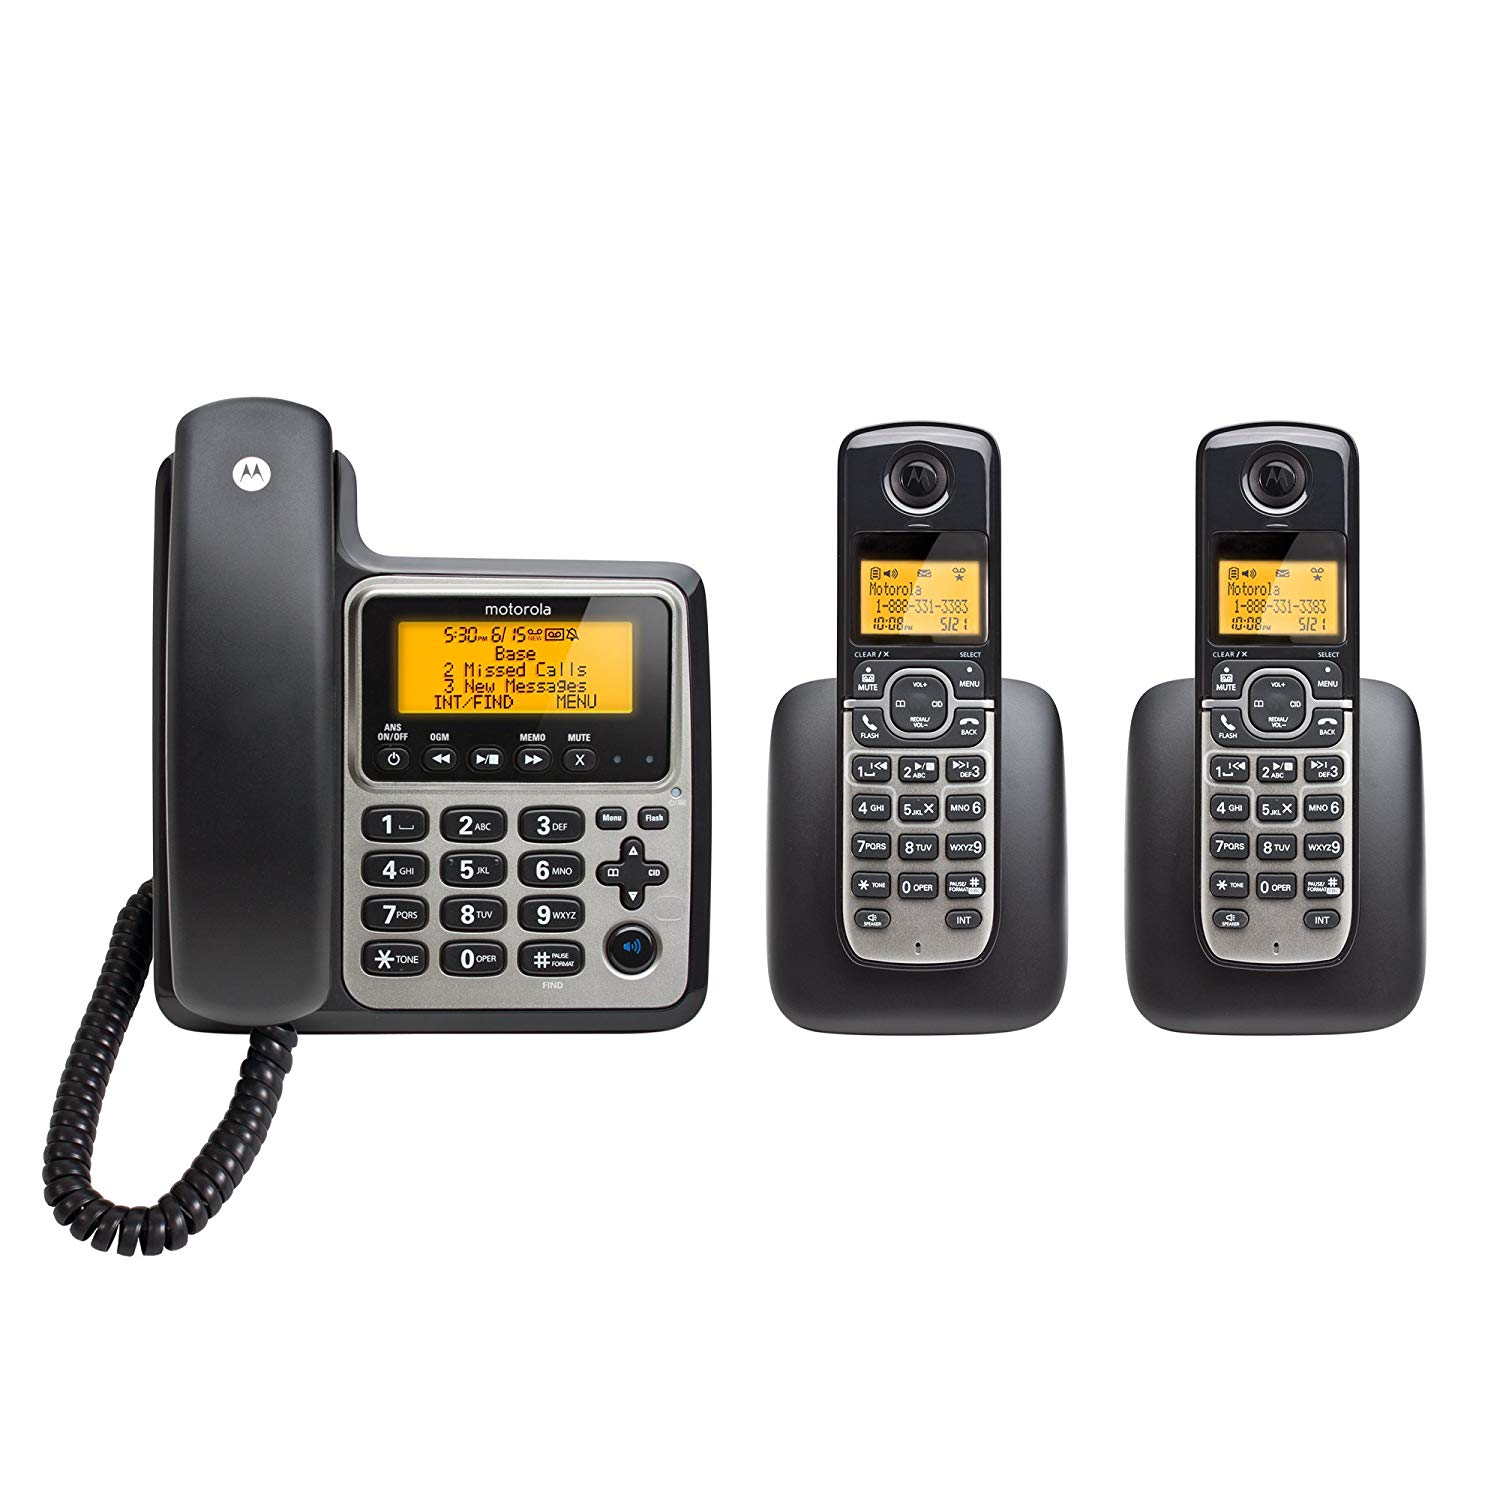 Motorola DECT 6.0 Corded Base Phone with 2 Cordless Handsets and Answering System